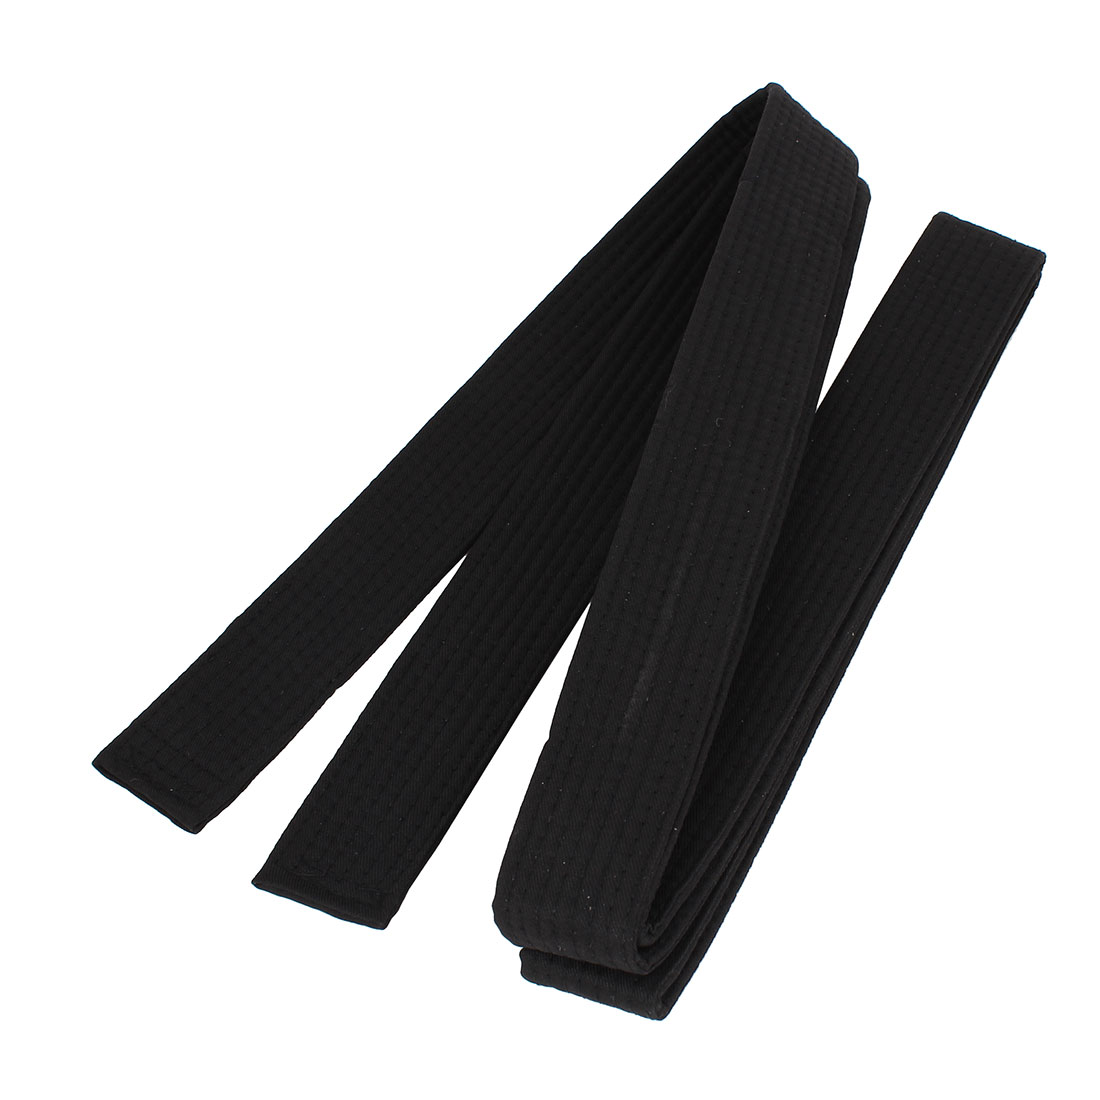 Martial Arts Karate TaeKwonDo Judo Soft Black Belt 8.5ft Long